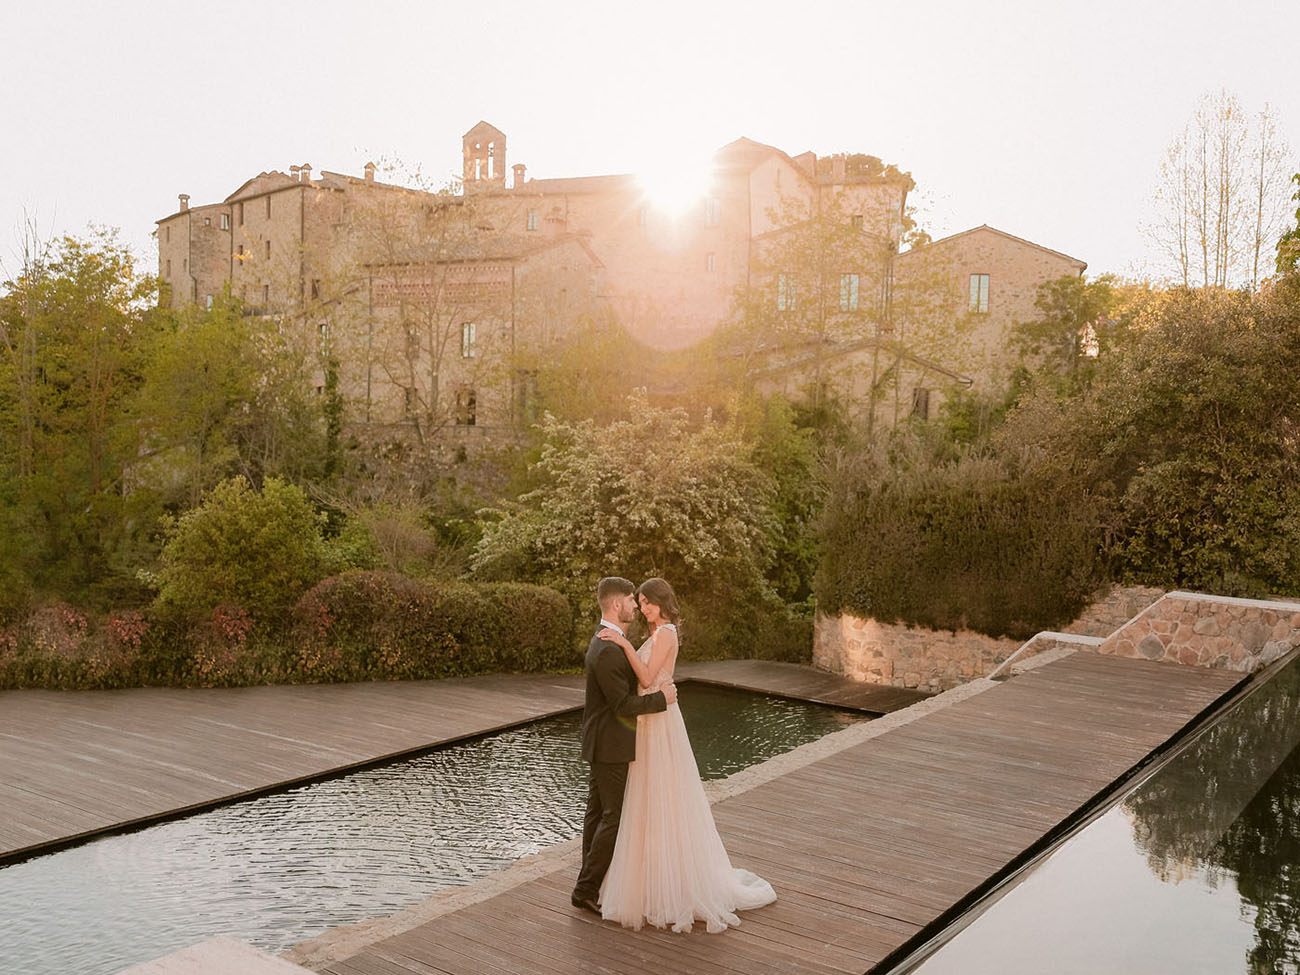 Modern Romance in the Warm Tuscan Sunlight + A Sweet Moped Sendoff!